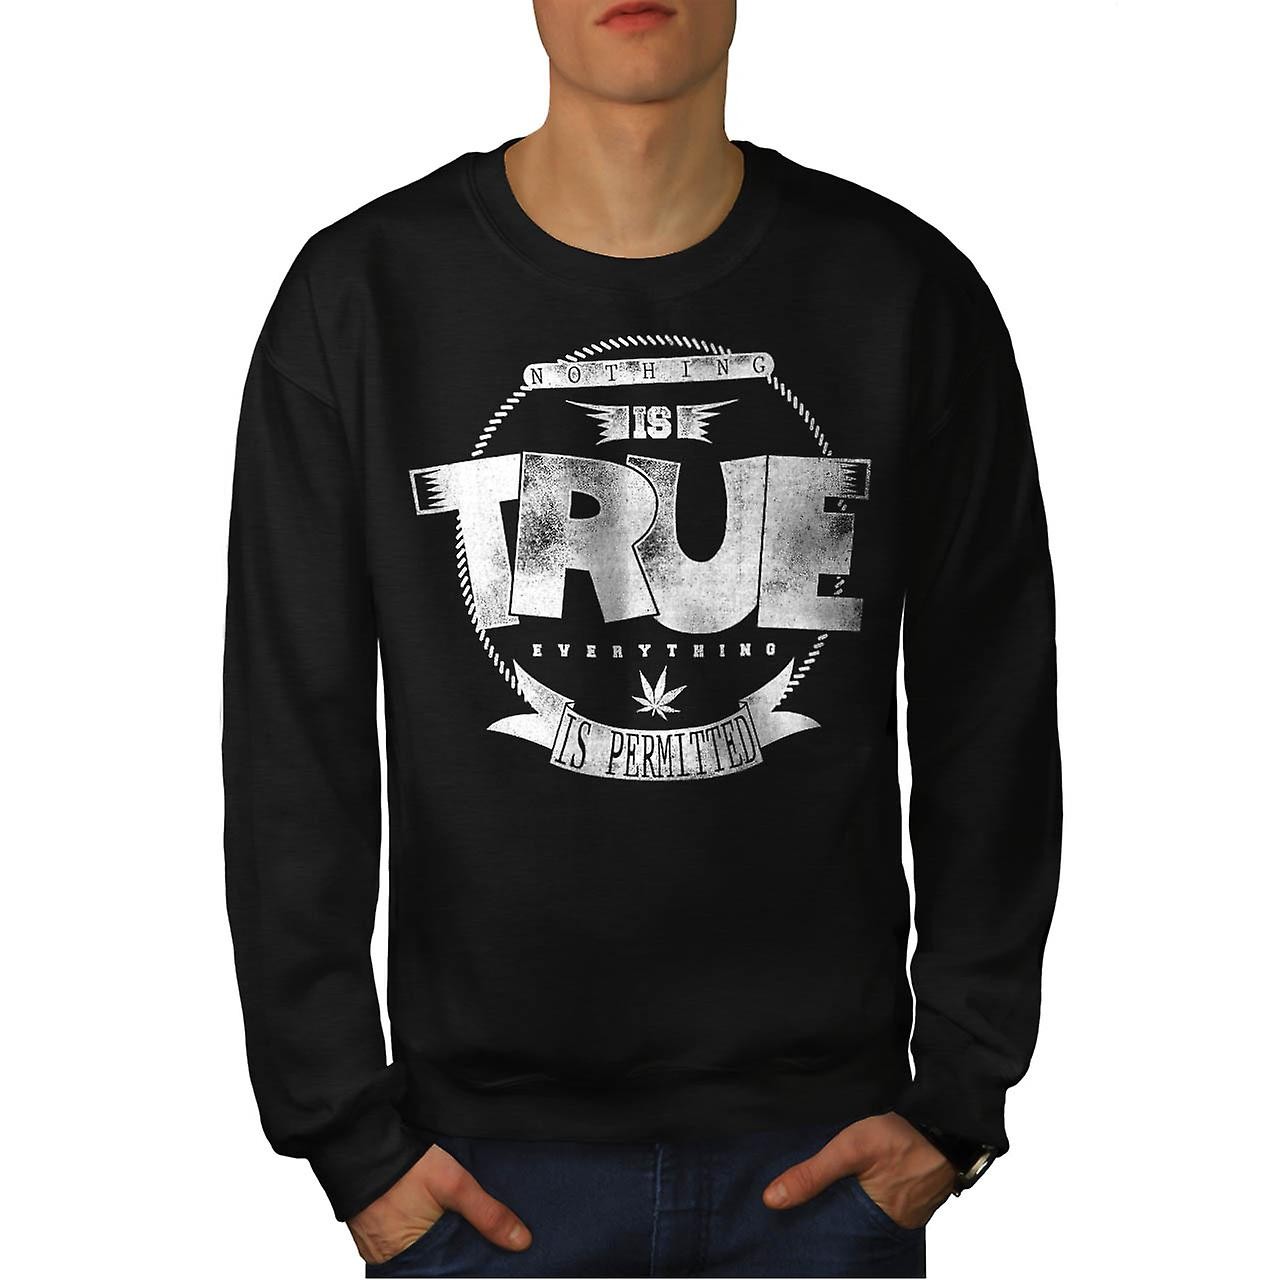 Weed Nothing True USA Marijuana Men Black Sweatshirt | Wellcoda